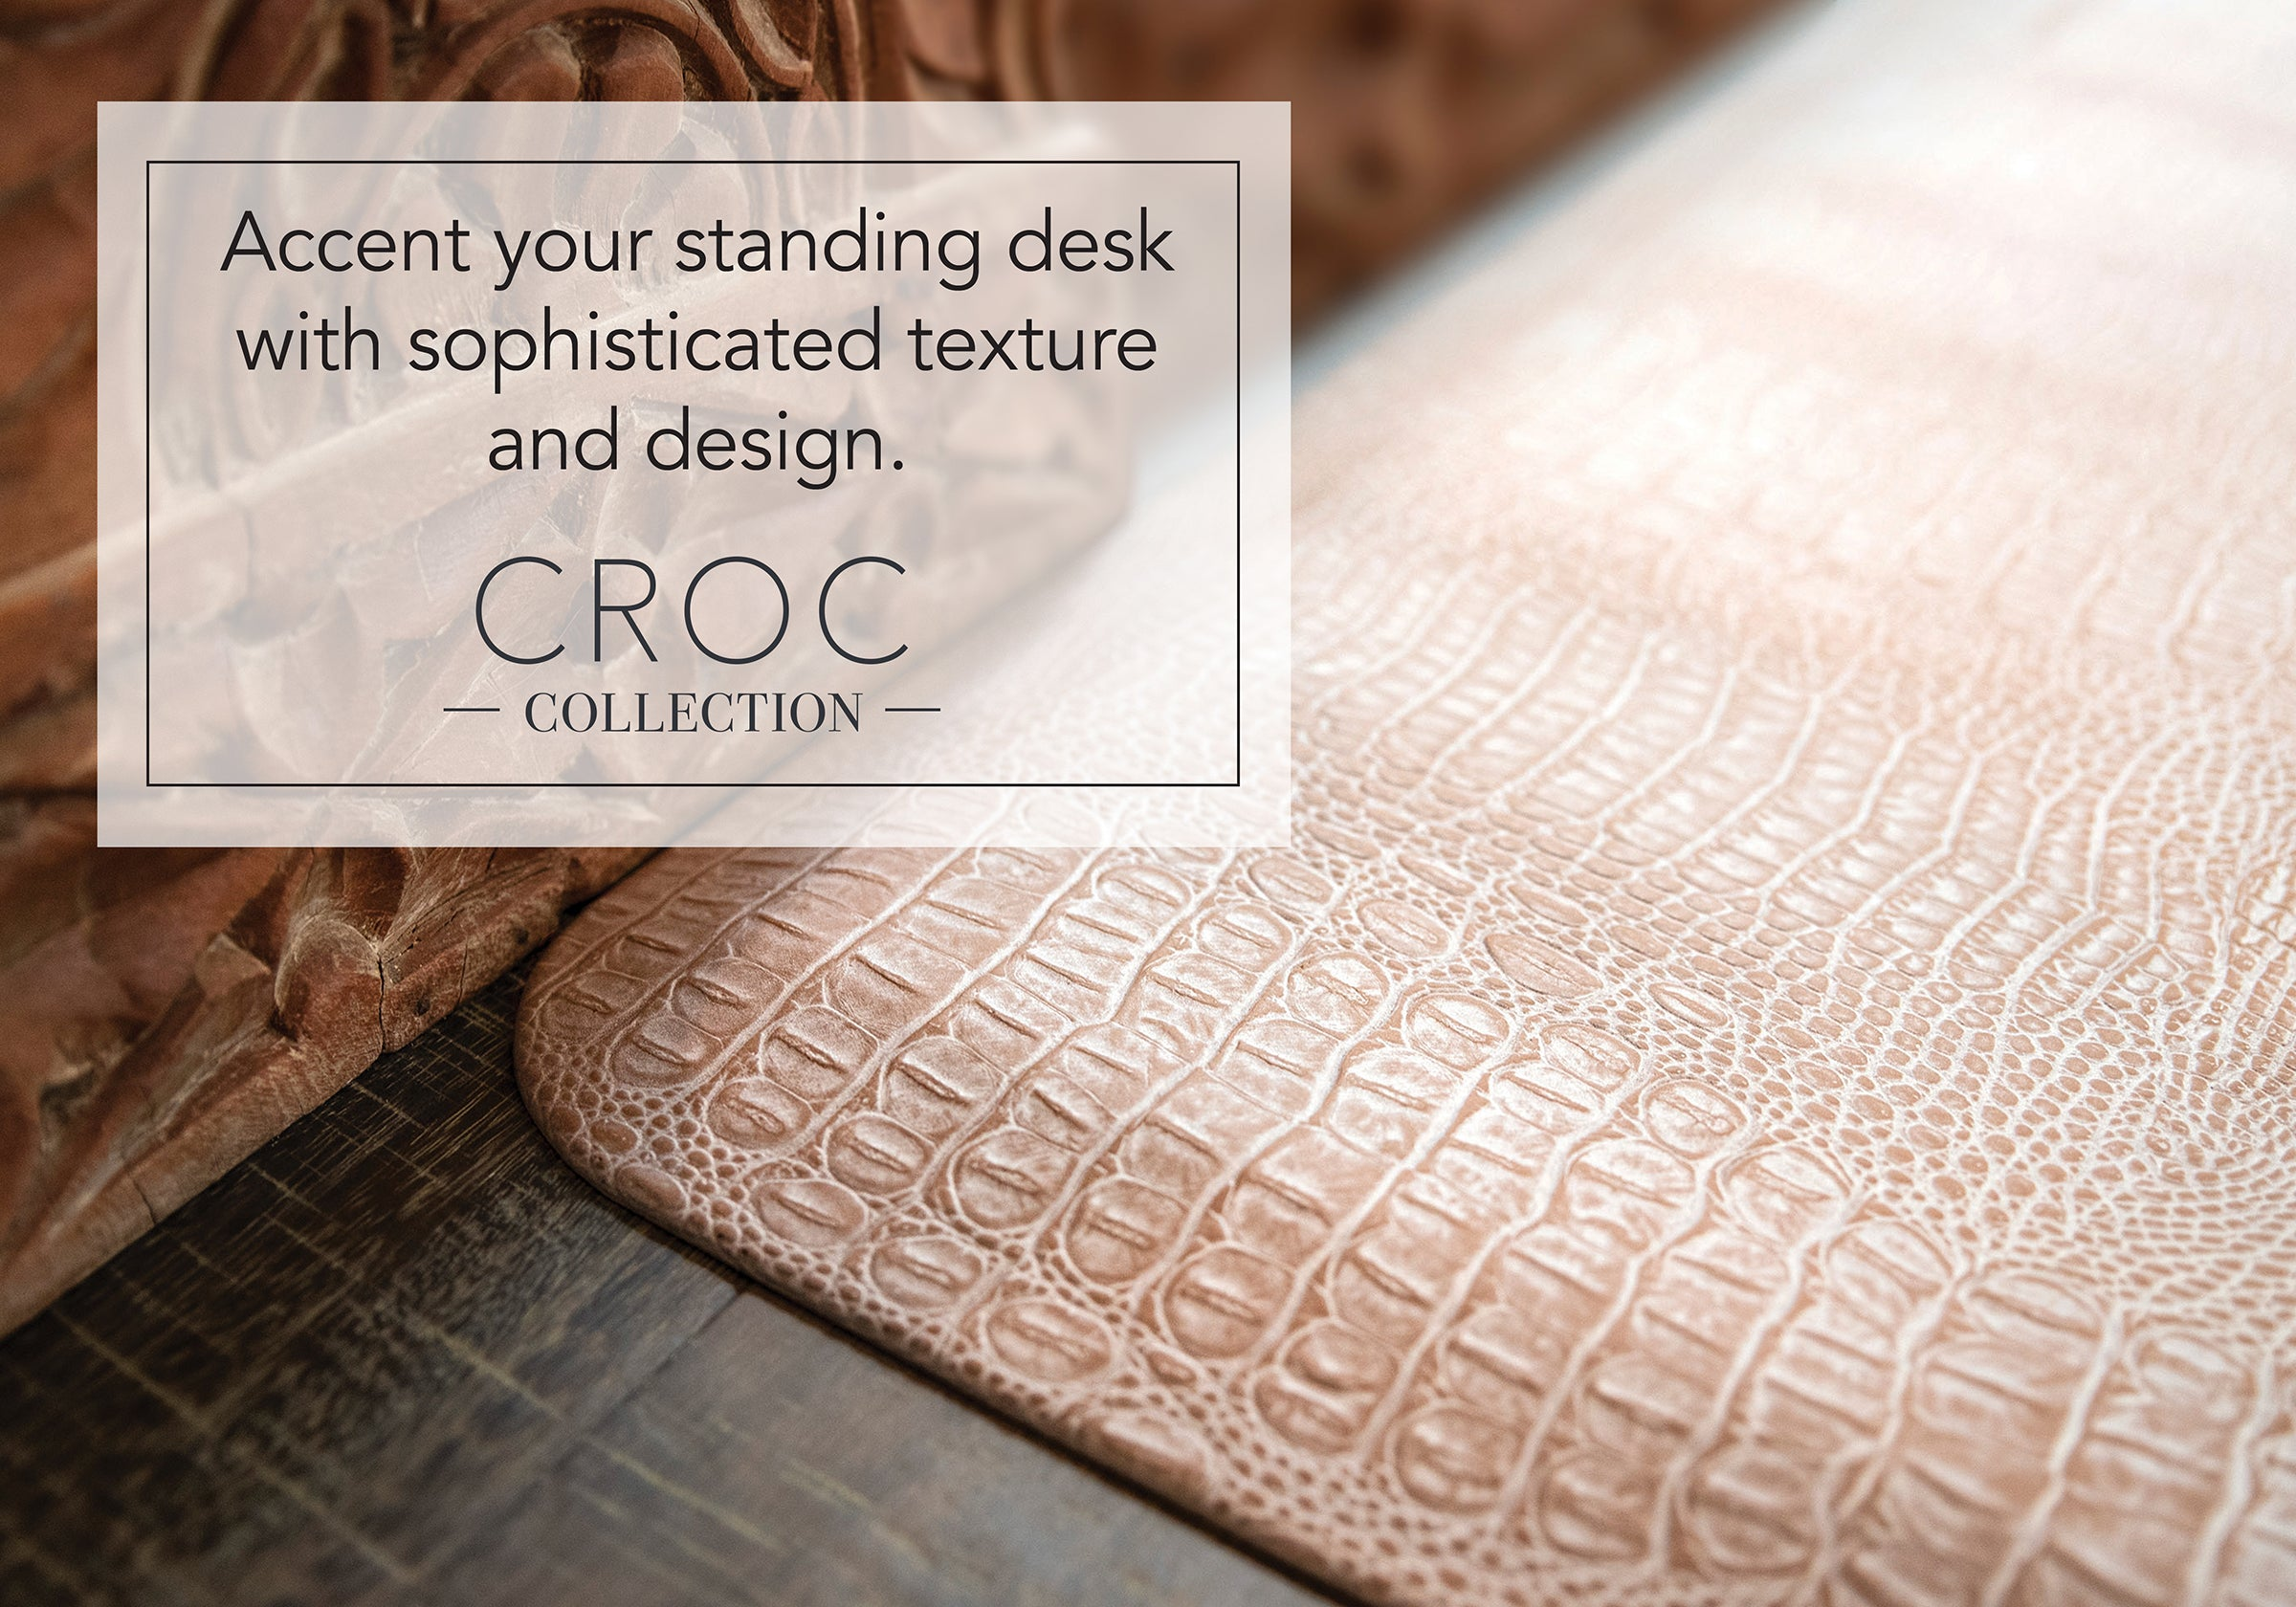 Croc Collection - Accent your standing desk with sophisticated texture and design.